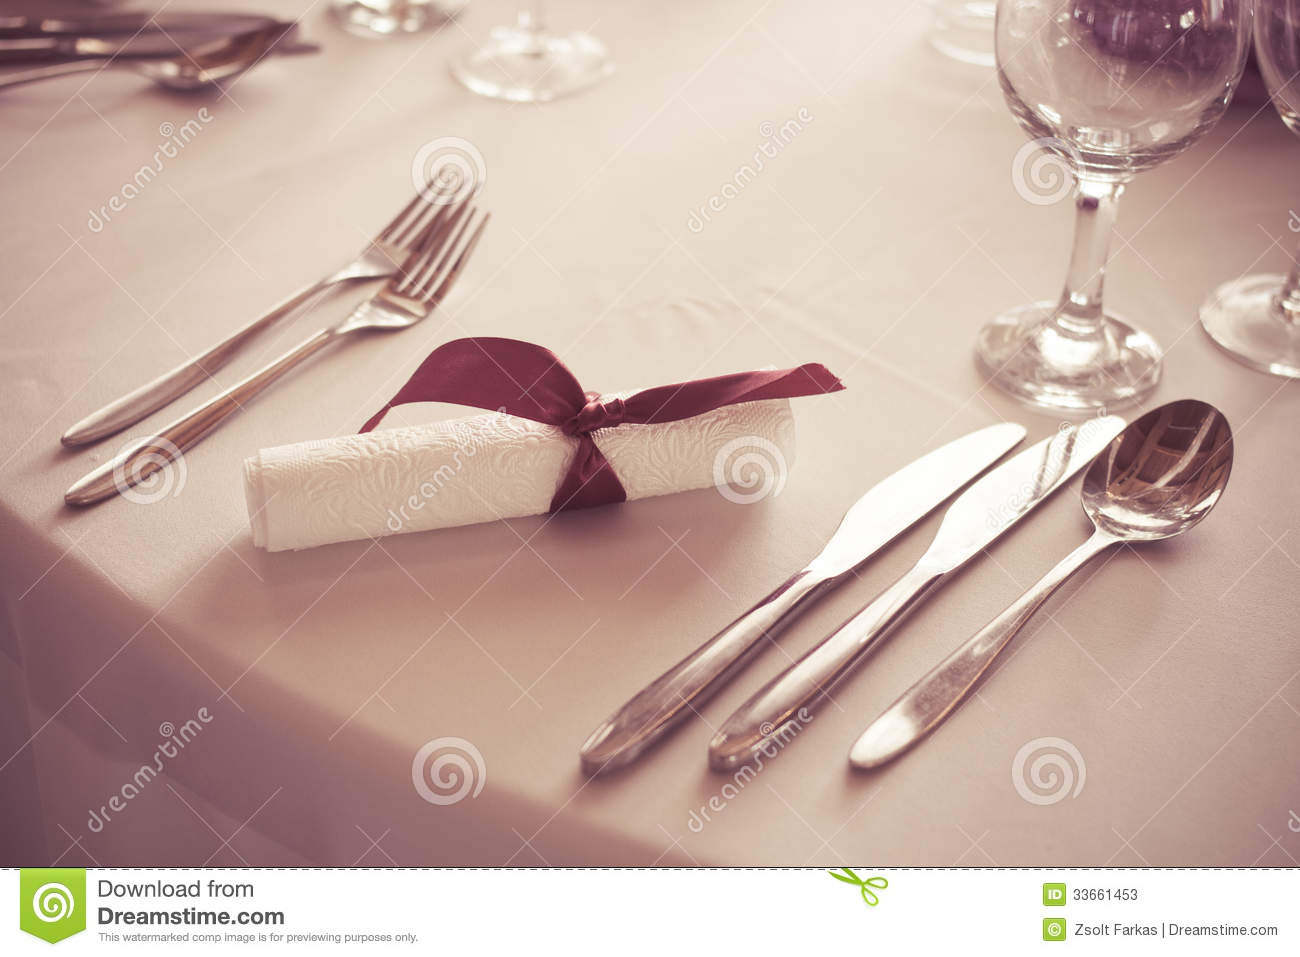 Kitchen Knife Collection Wedding Table Place Setting Cutlery Stock Photos Image